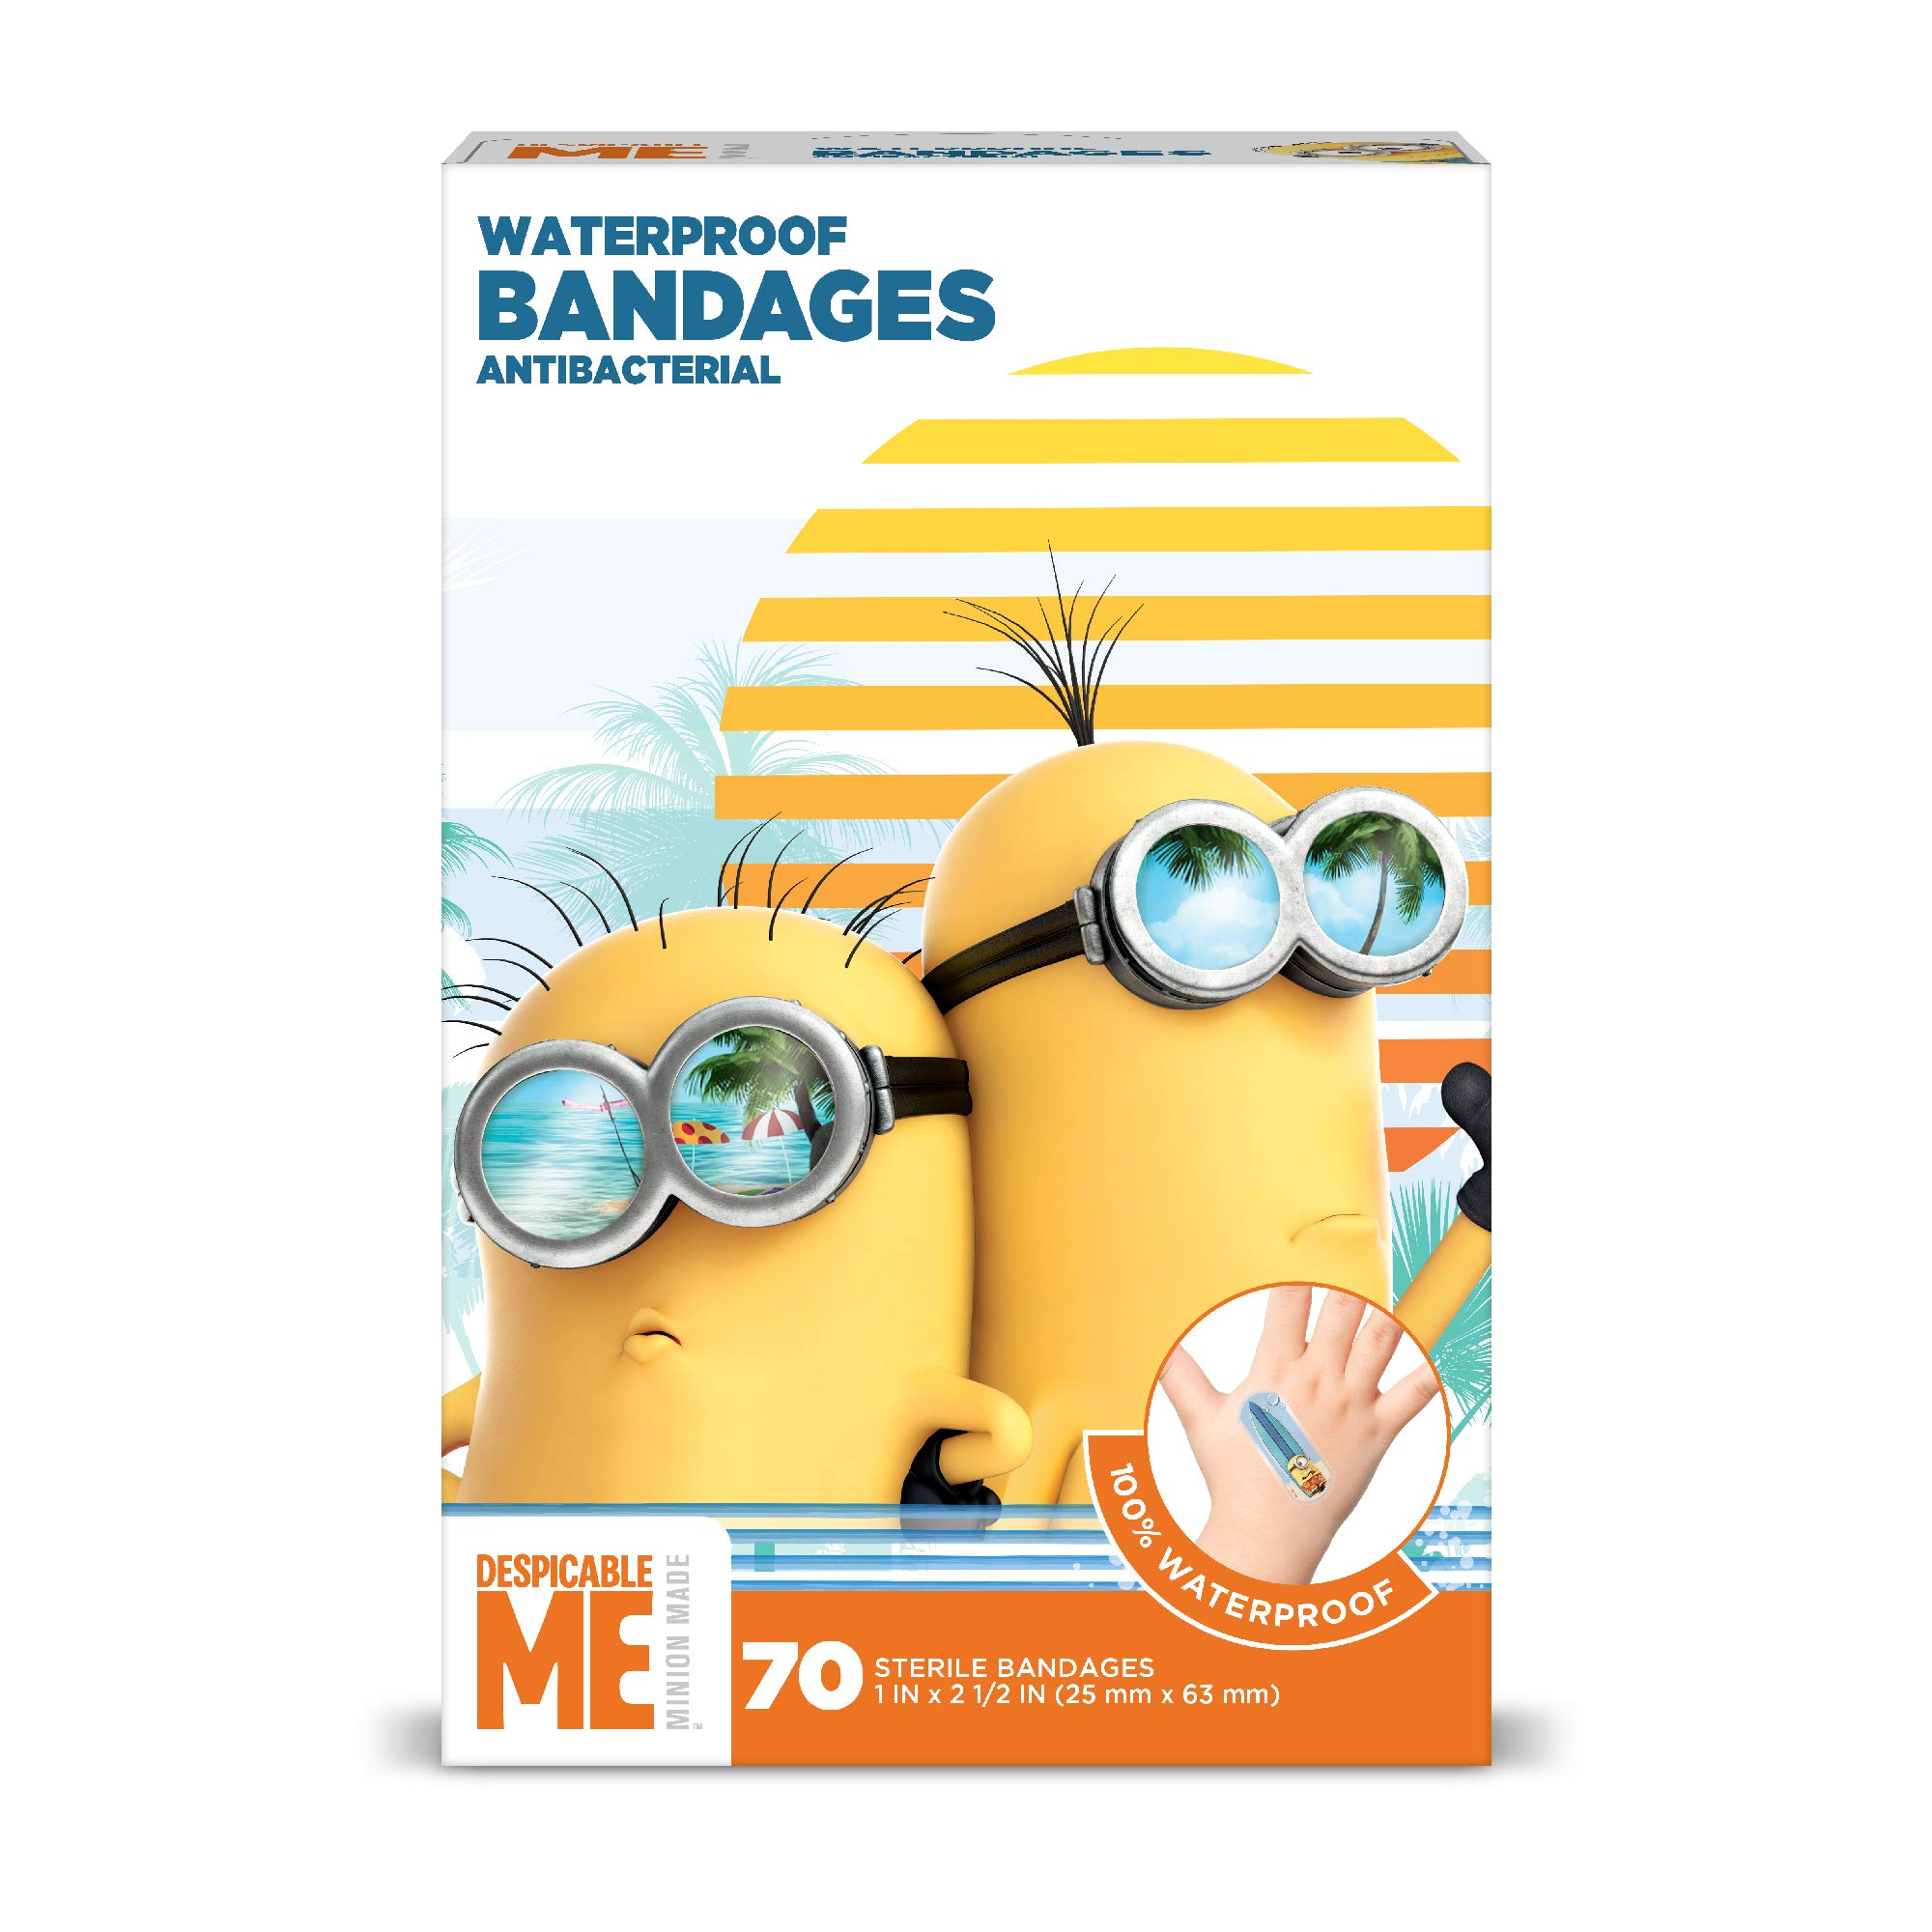 Despicable Me Minions Kids Bandages, 70 ct | 100% Waterproof, Antibacterial Bandages for Use on Minor Cuts, Scrapes, Burns